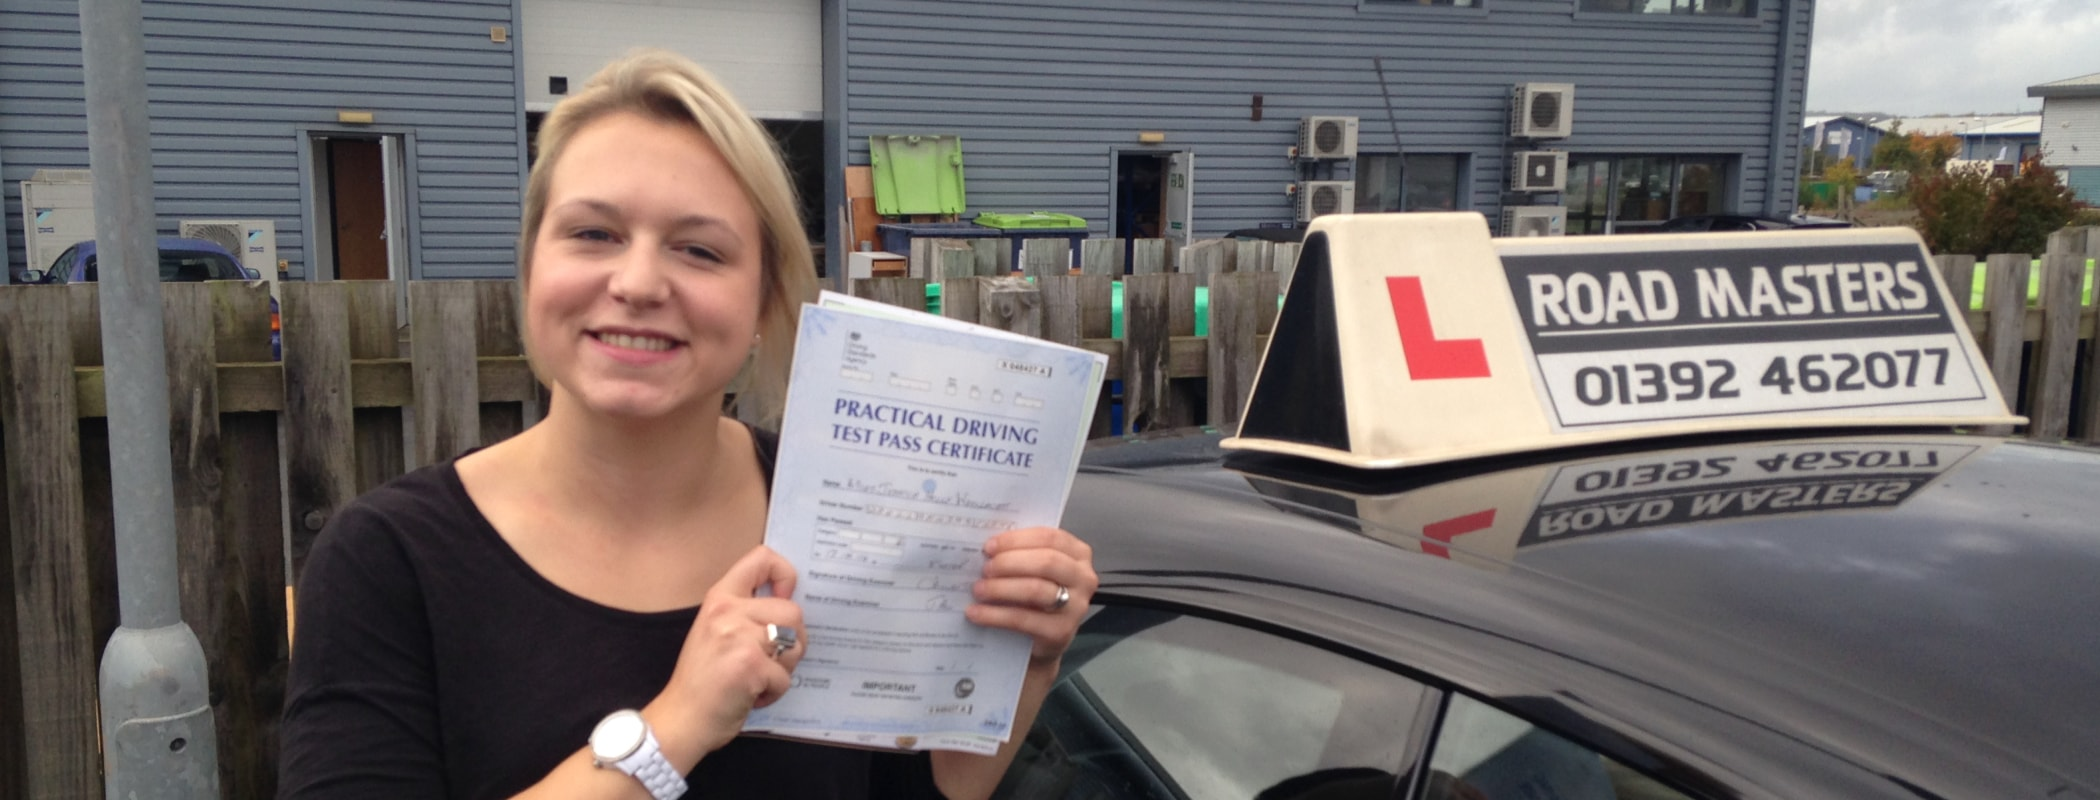 Driving lessons Devon from £29 /hr*